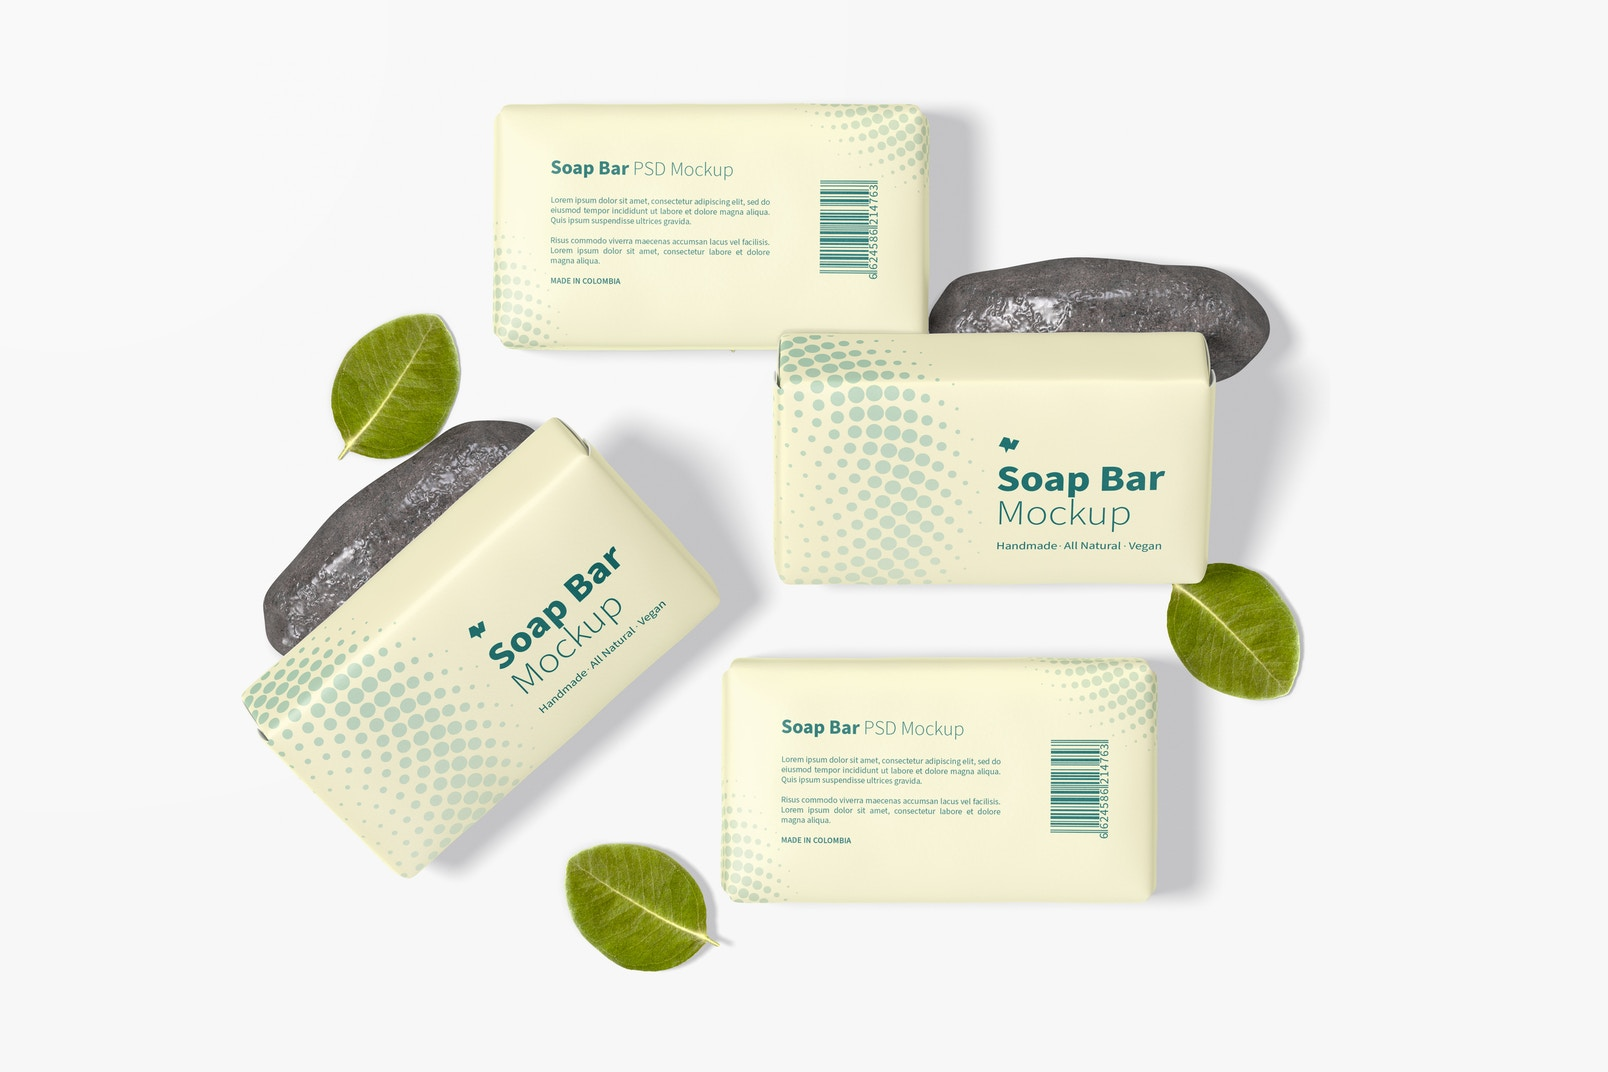 Soap Bars with Paper Package Mockup, Top View